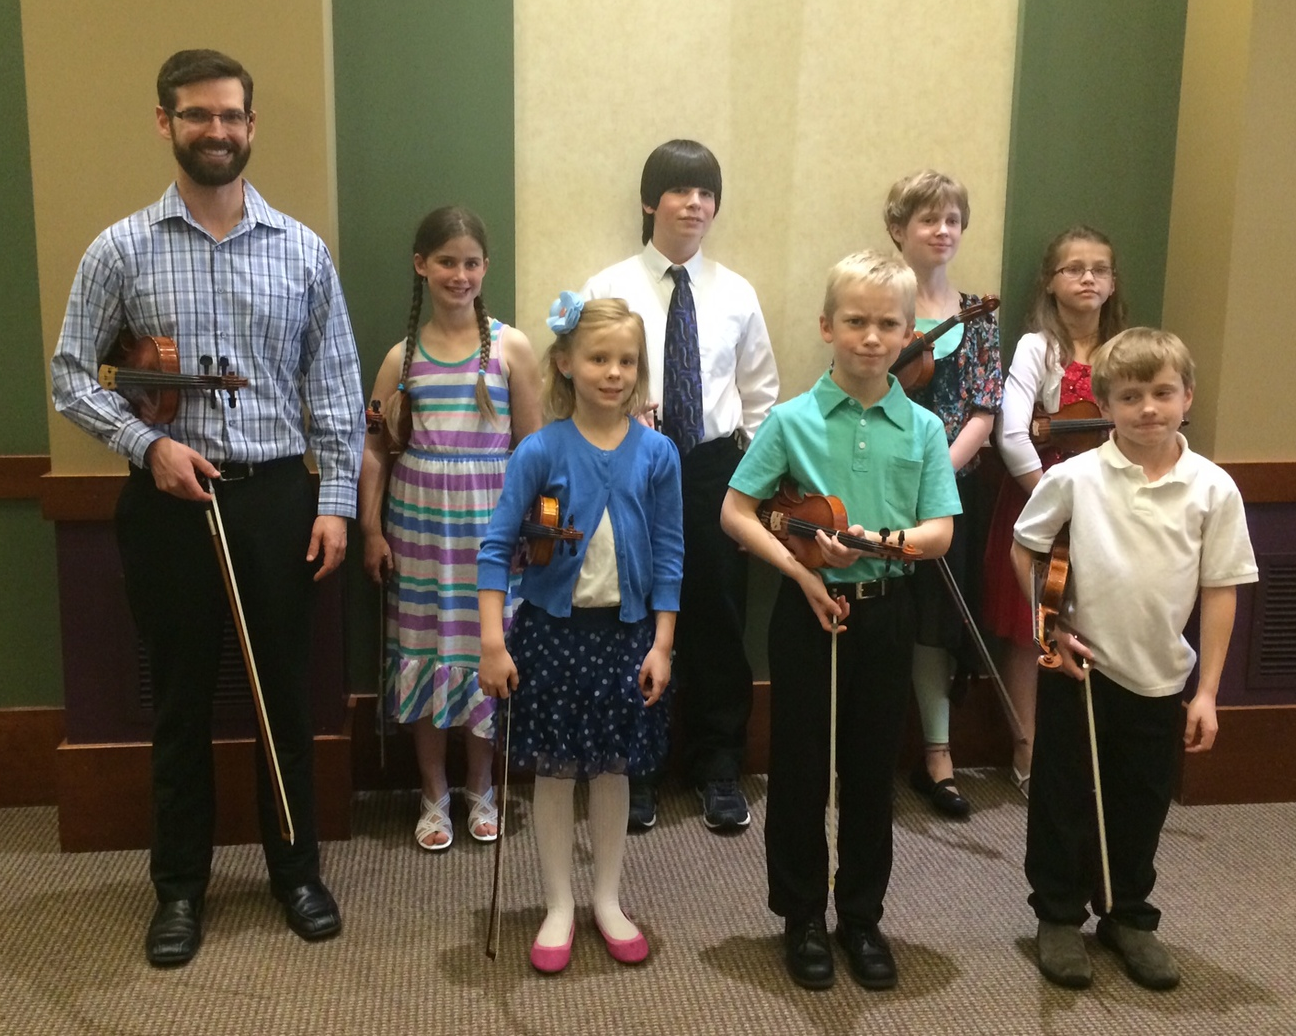 Spring 2014 recital at Mayo Red Wing with former teacher, Luke Hubbard.